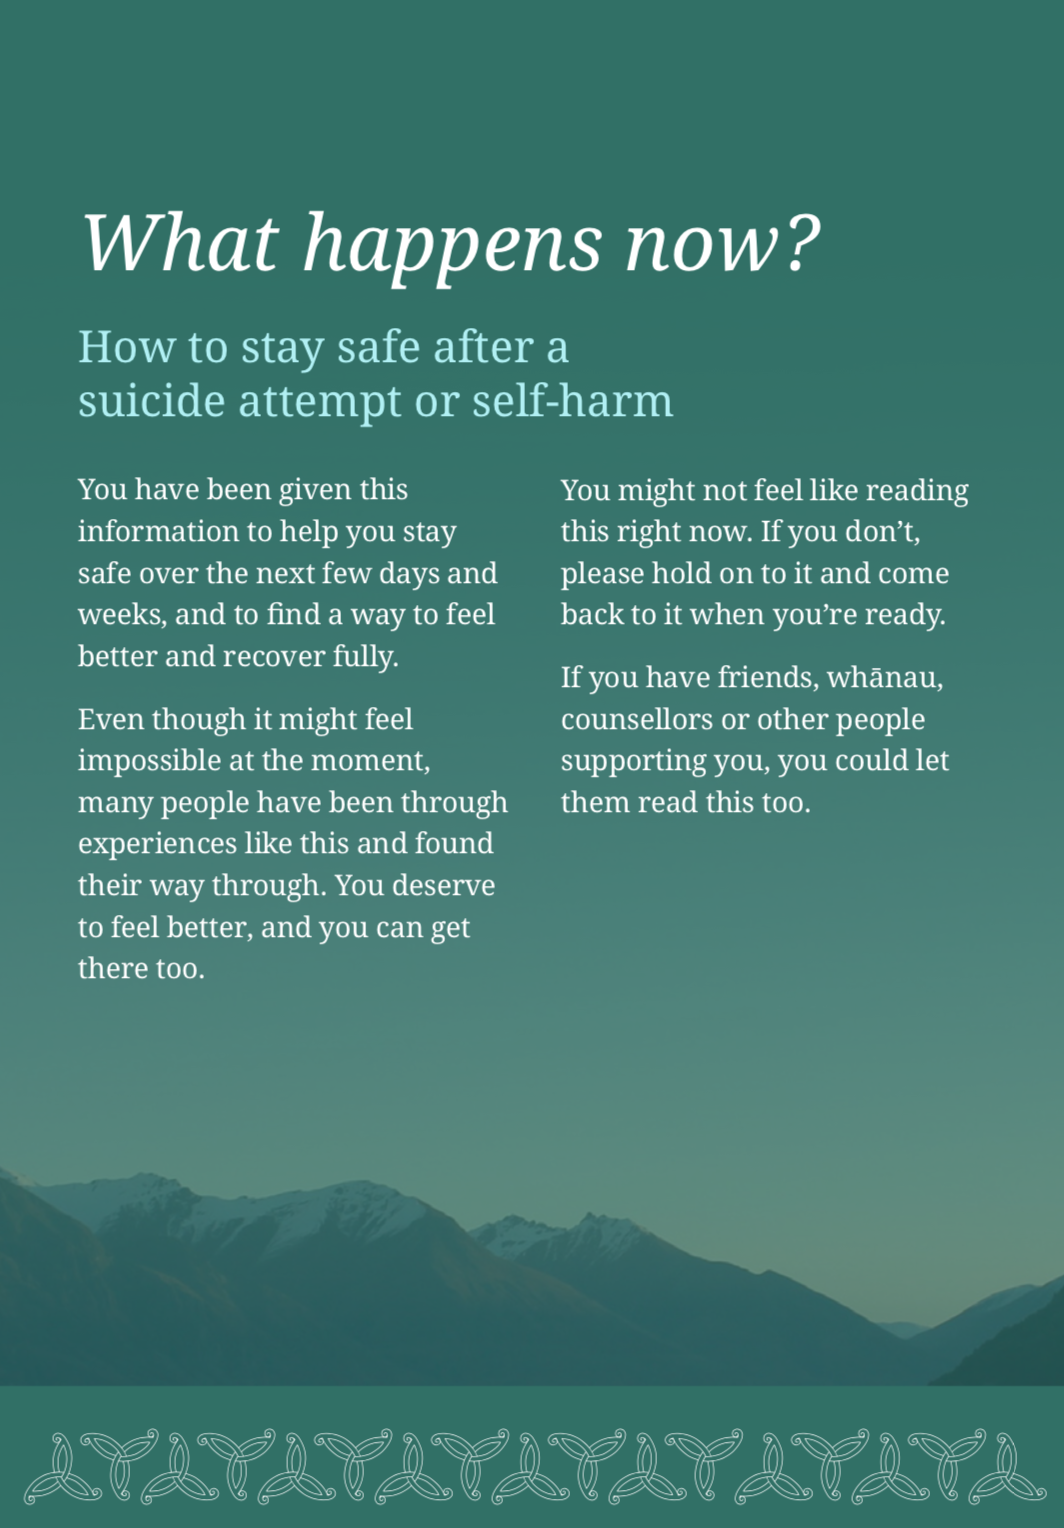 What Happens Now? How to stay safe after a suicide attempt or self-harm (NZ) -   Download